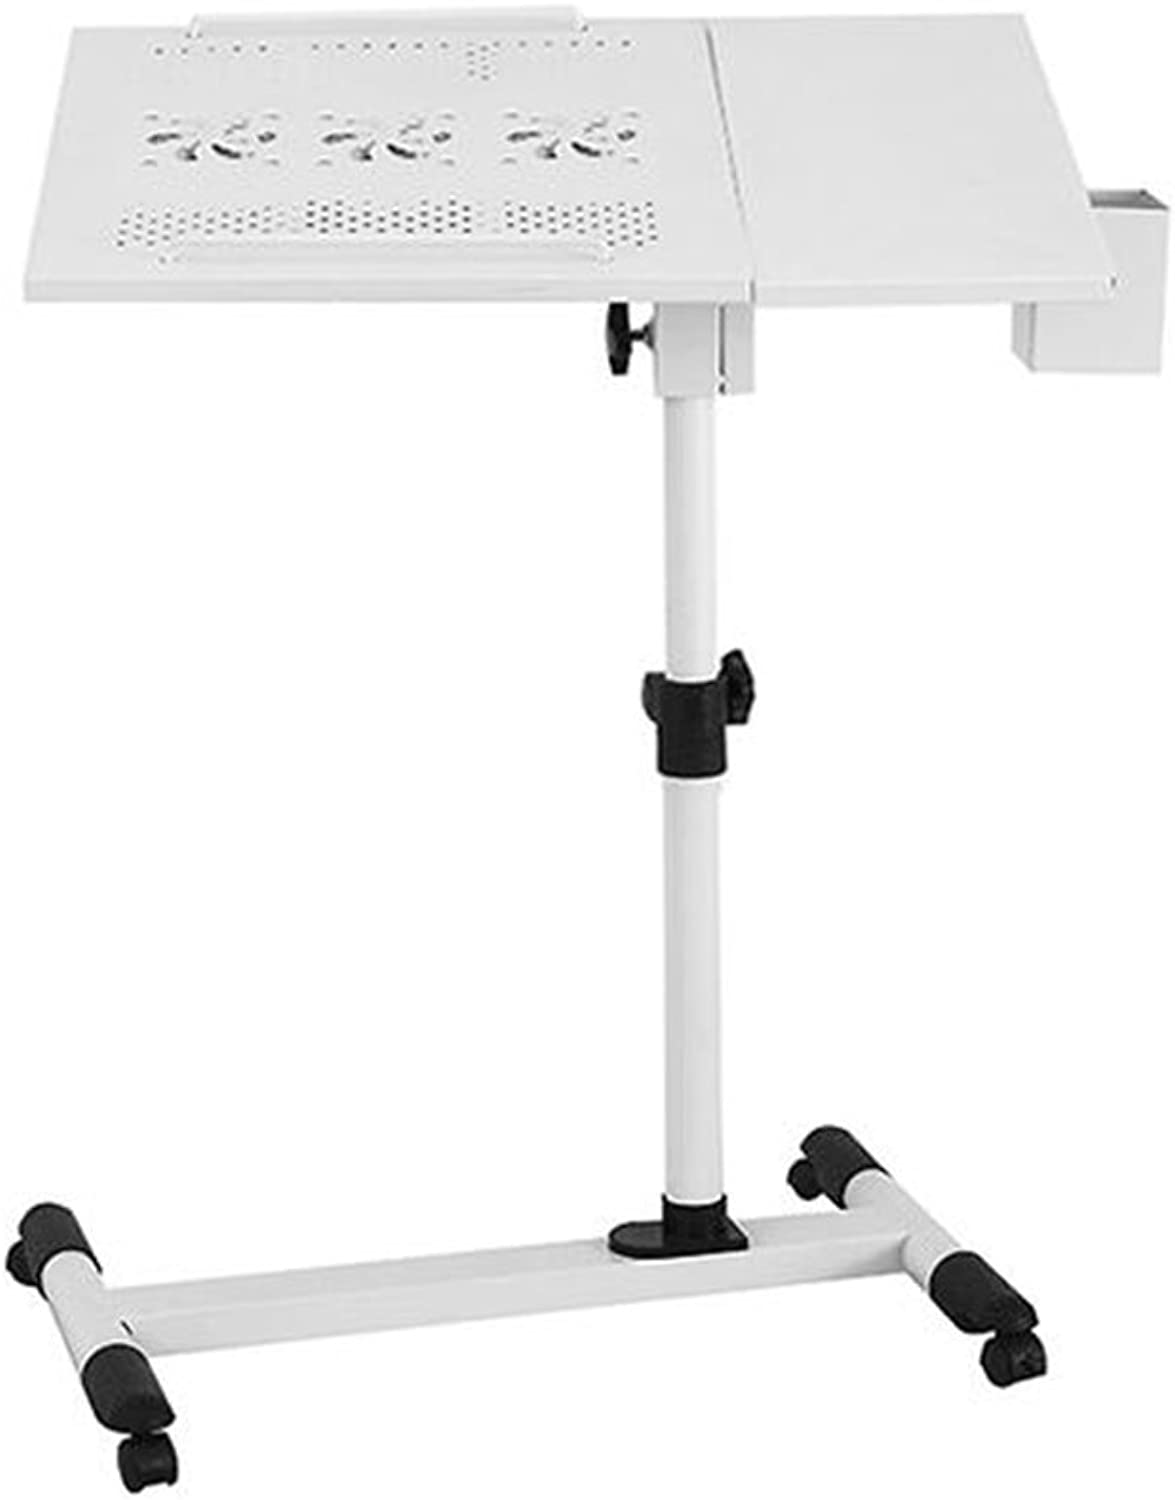 Zr- Environmentally-Friendly Cooling Laptop Table 360° redation Table Lazy Bedside Table Landing Table (color   White-a)